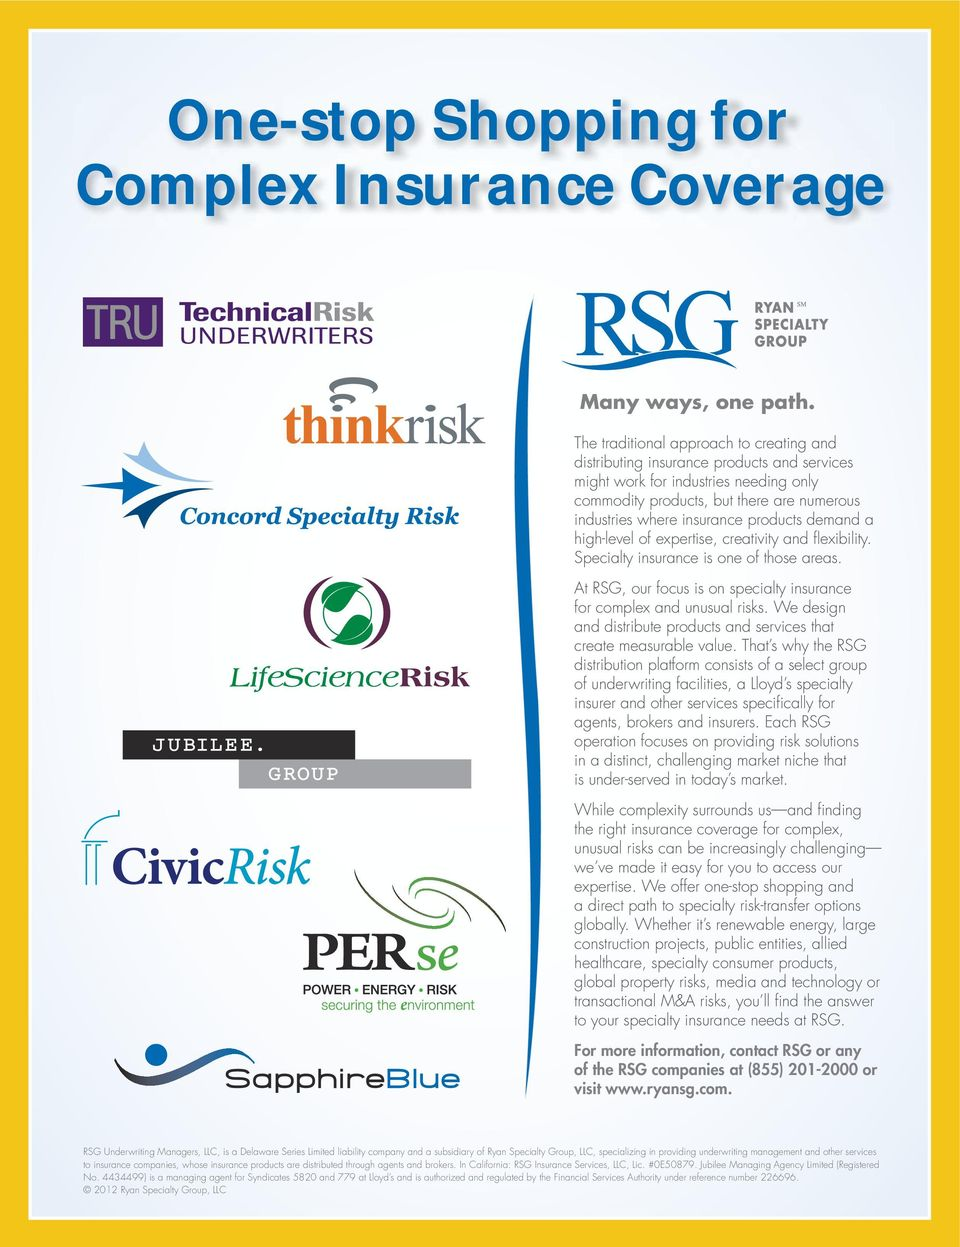 products demand a high-level of expertise, creativity and flexibility. Specialty insurance is one of those areas. At RSG, our focus is on specialty insurance for complex and unusual risks.